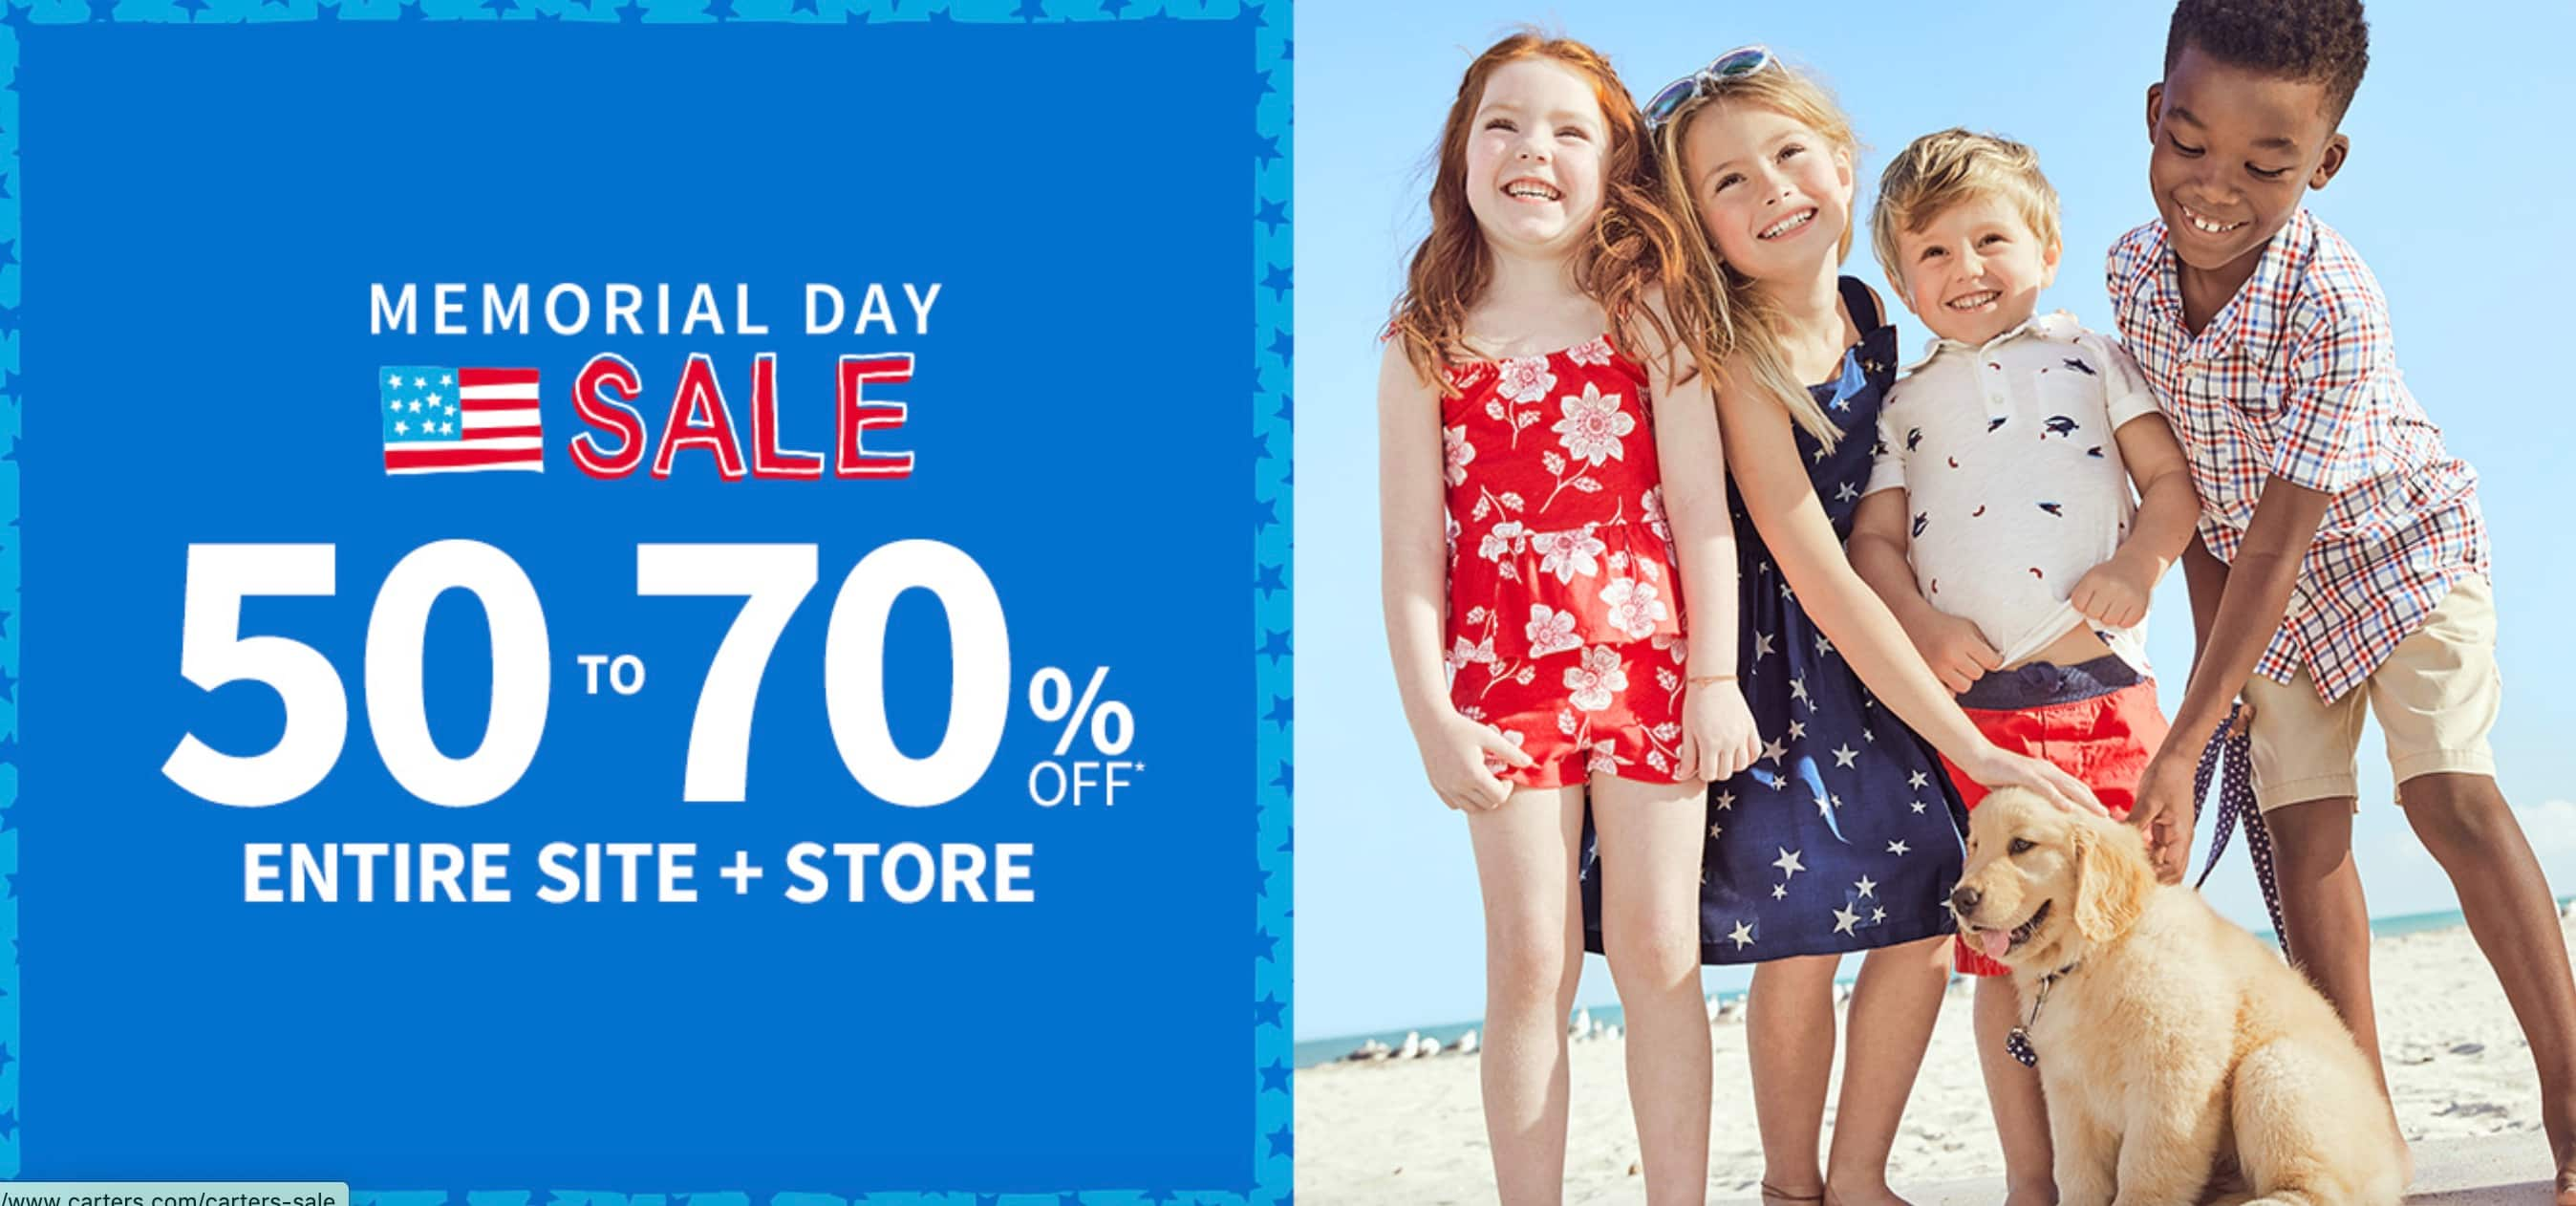 Carters sitewide 50-70% off, free shipping at $35 $8.4